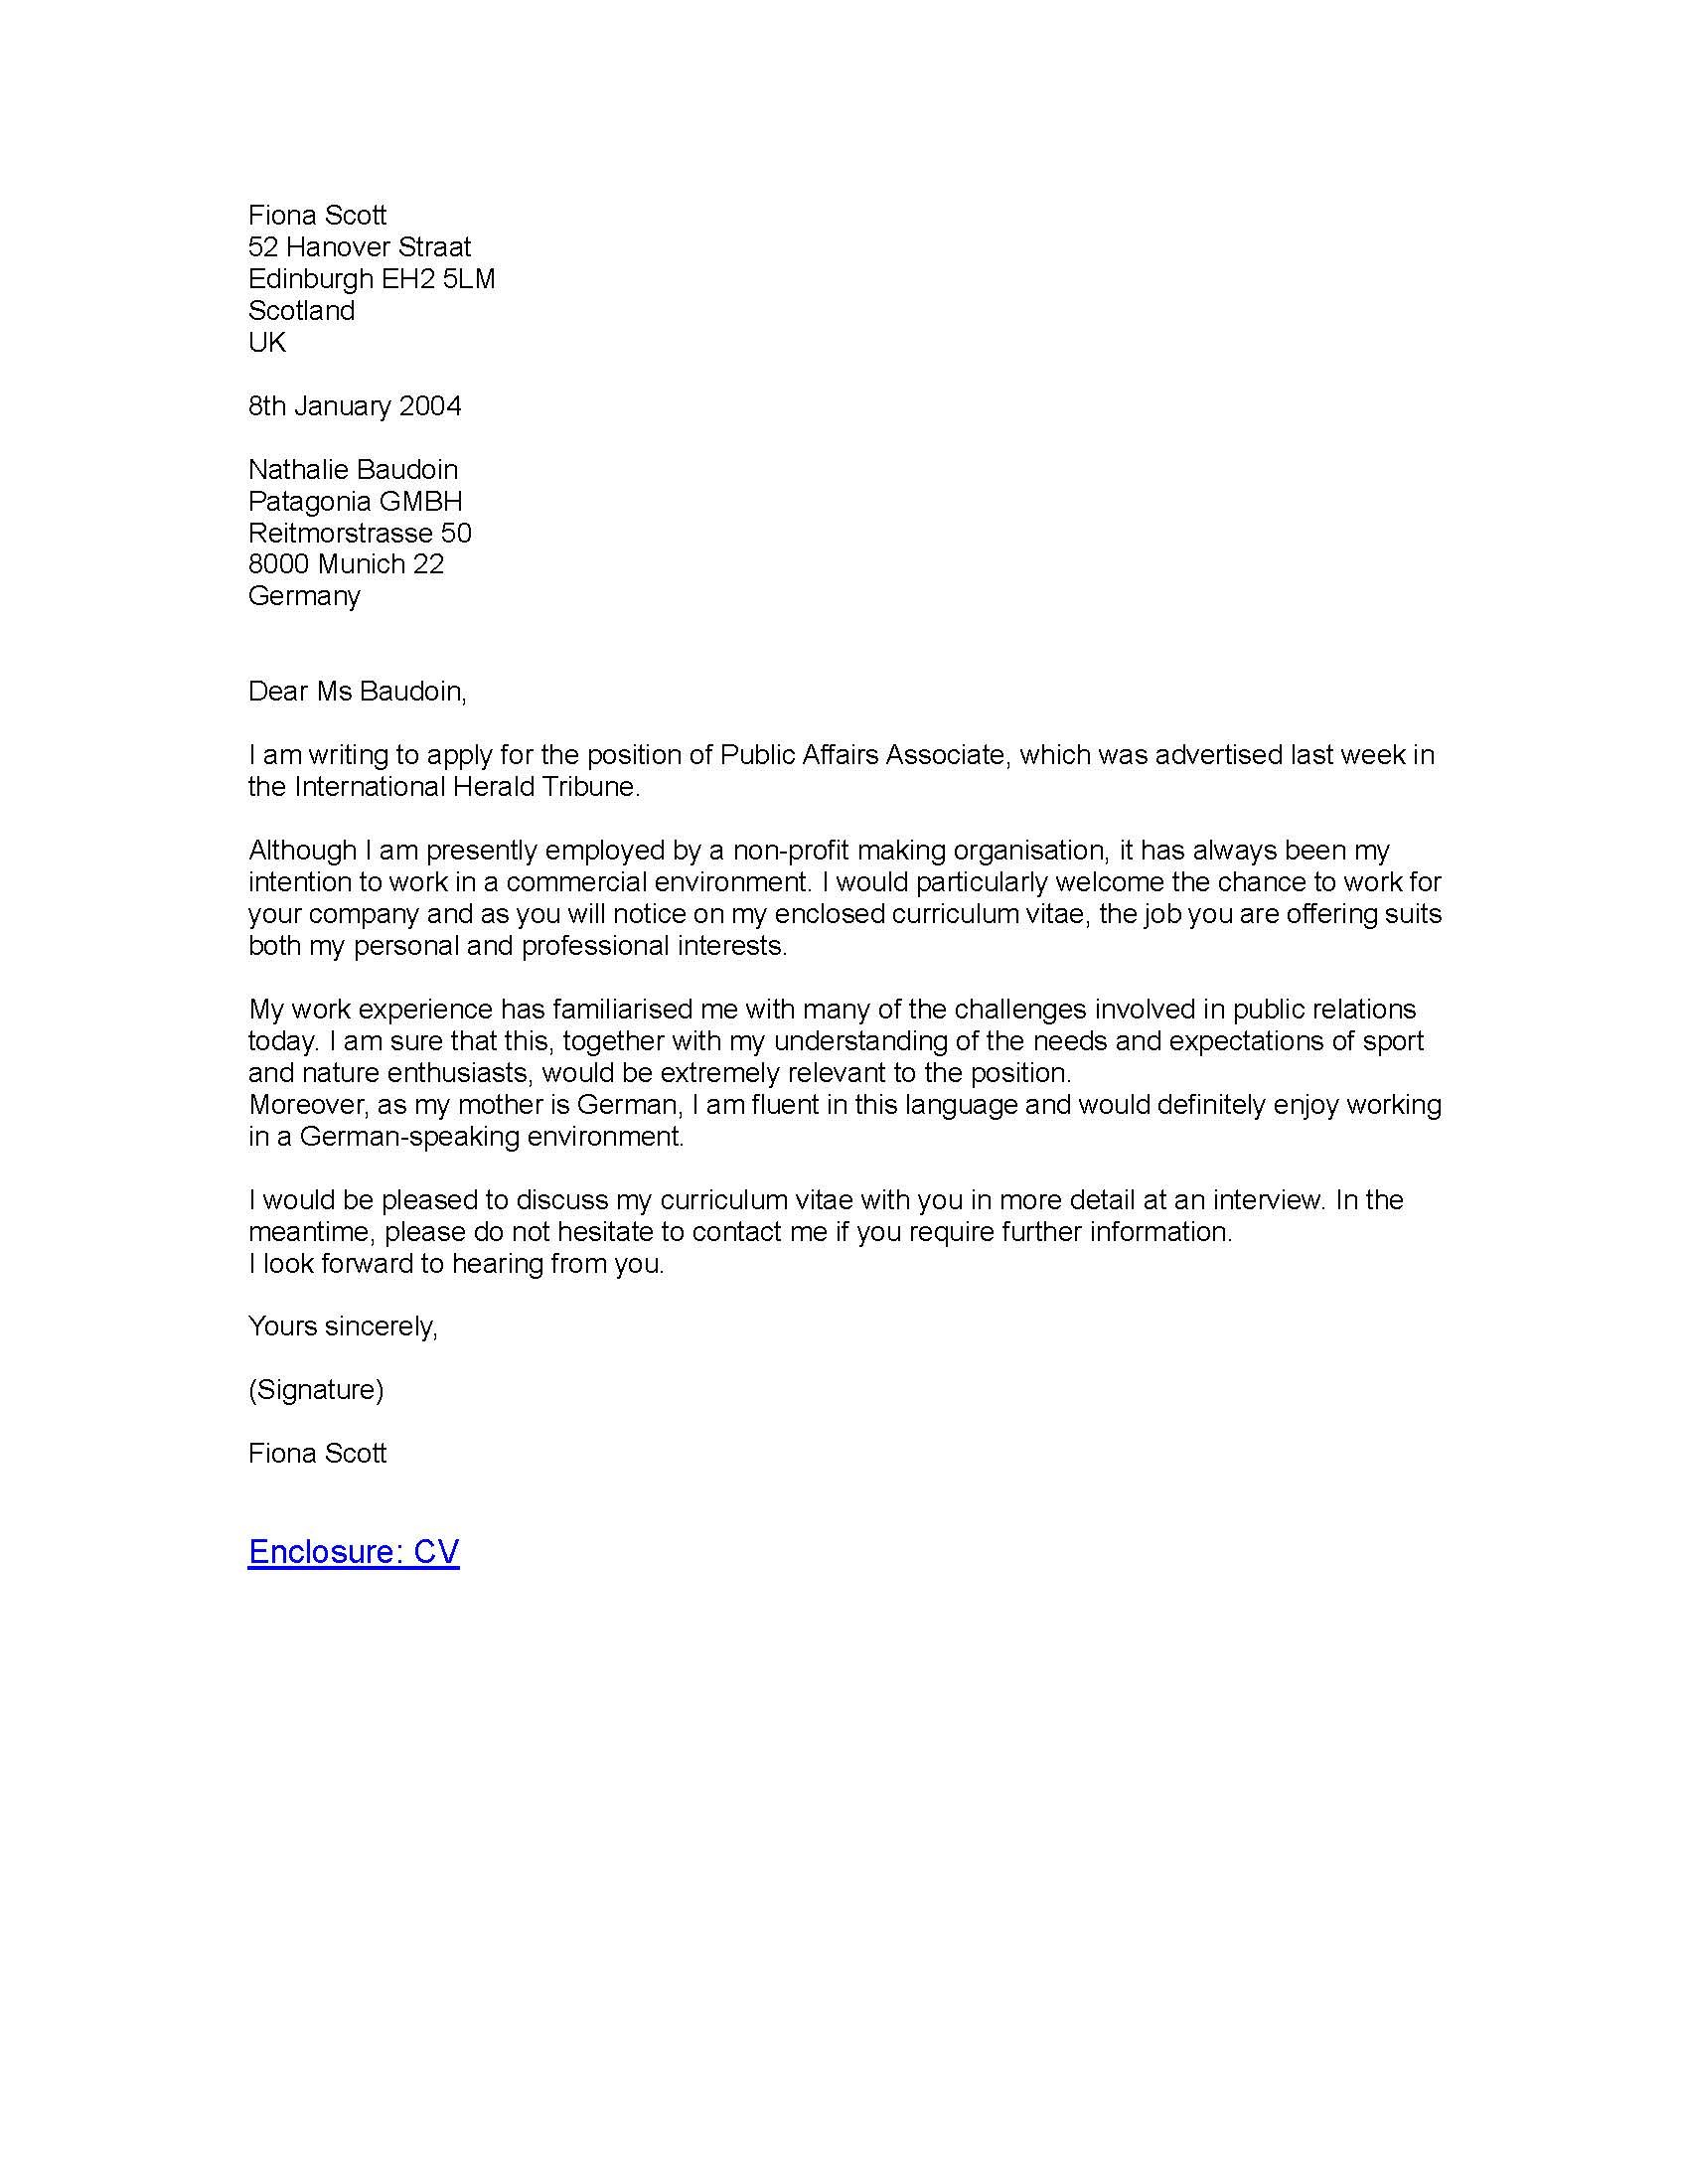 Final Notice before Legal Action Letter Template Uk - formal Business Letter Applying for A Job